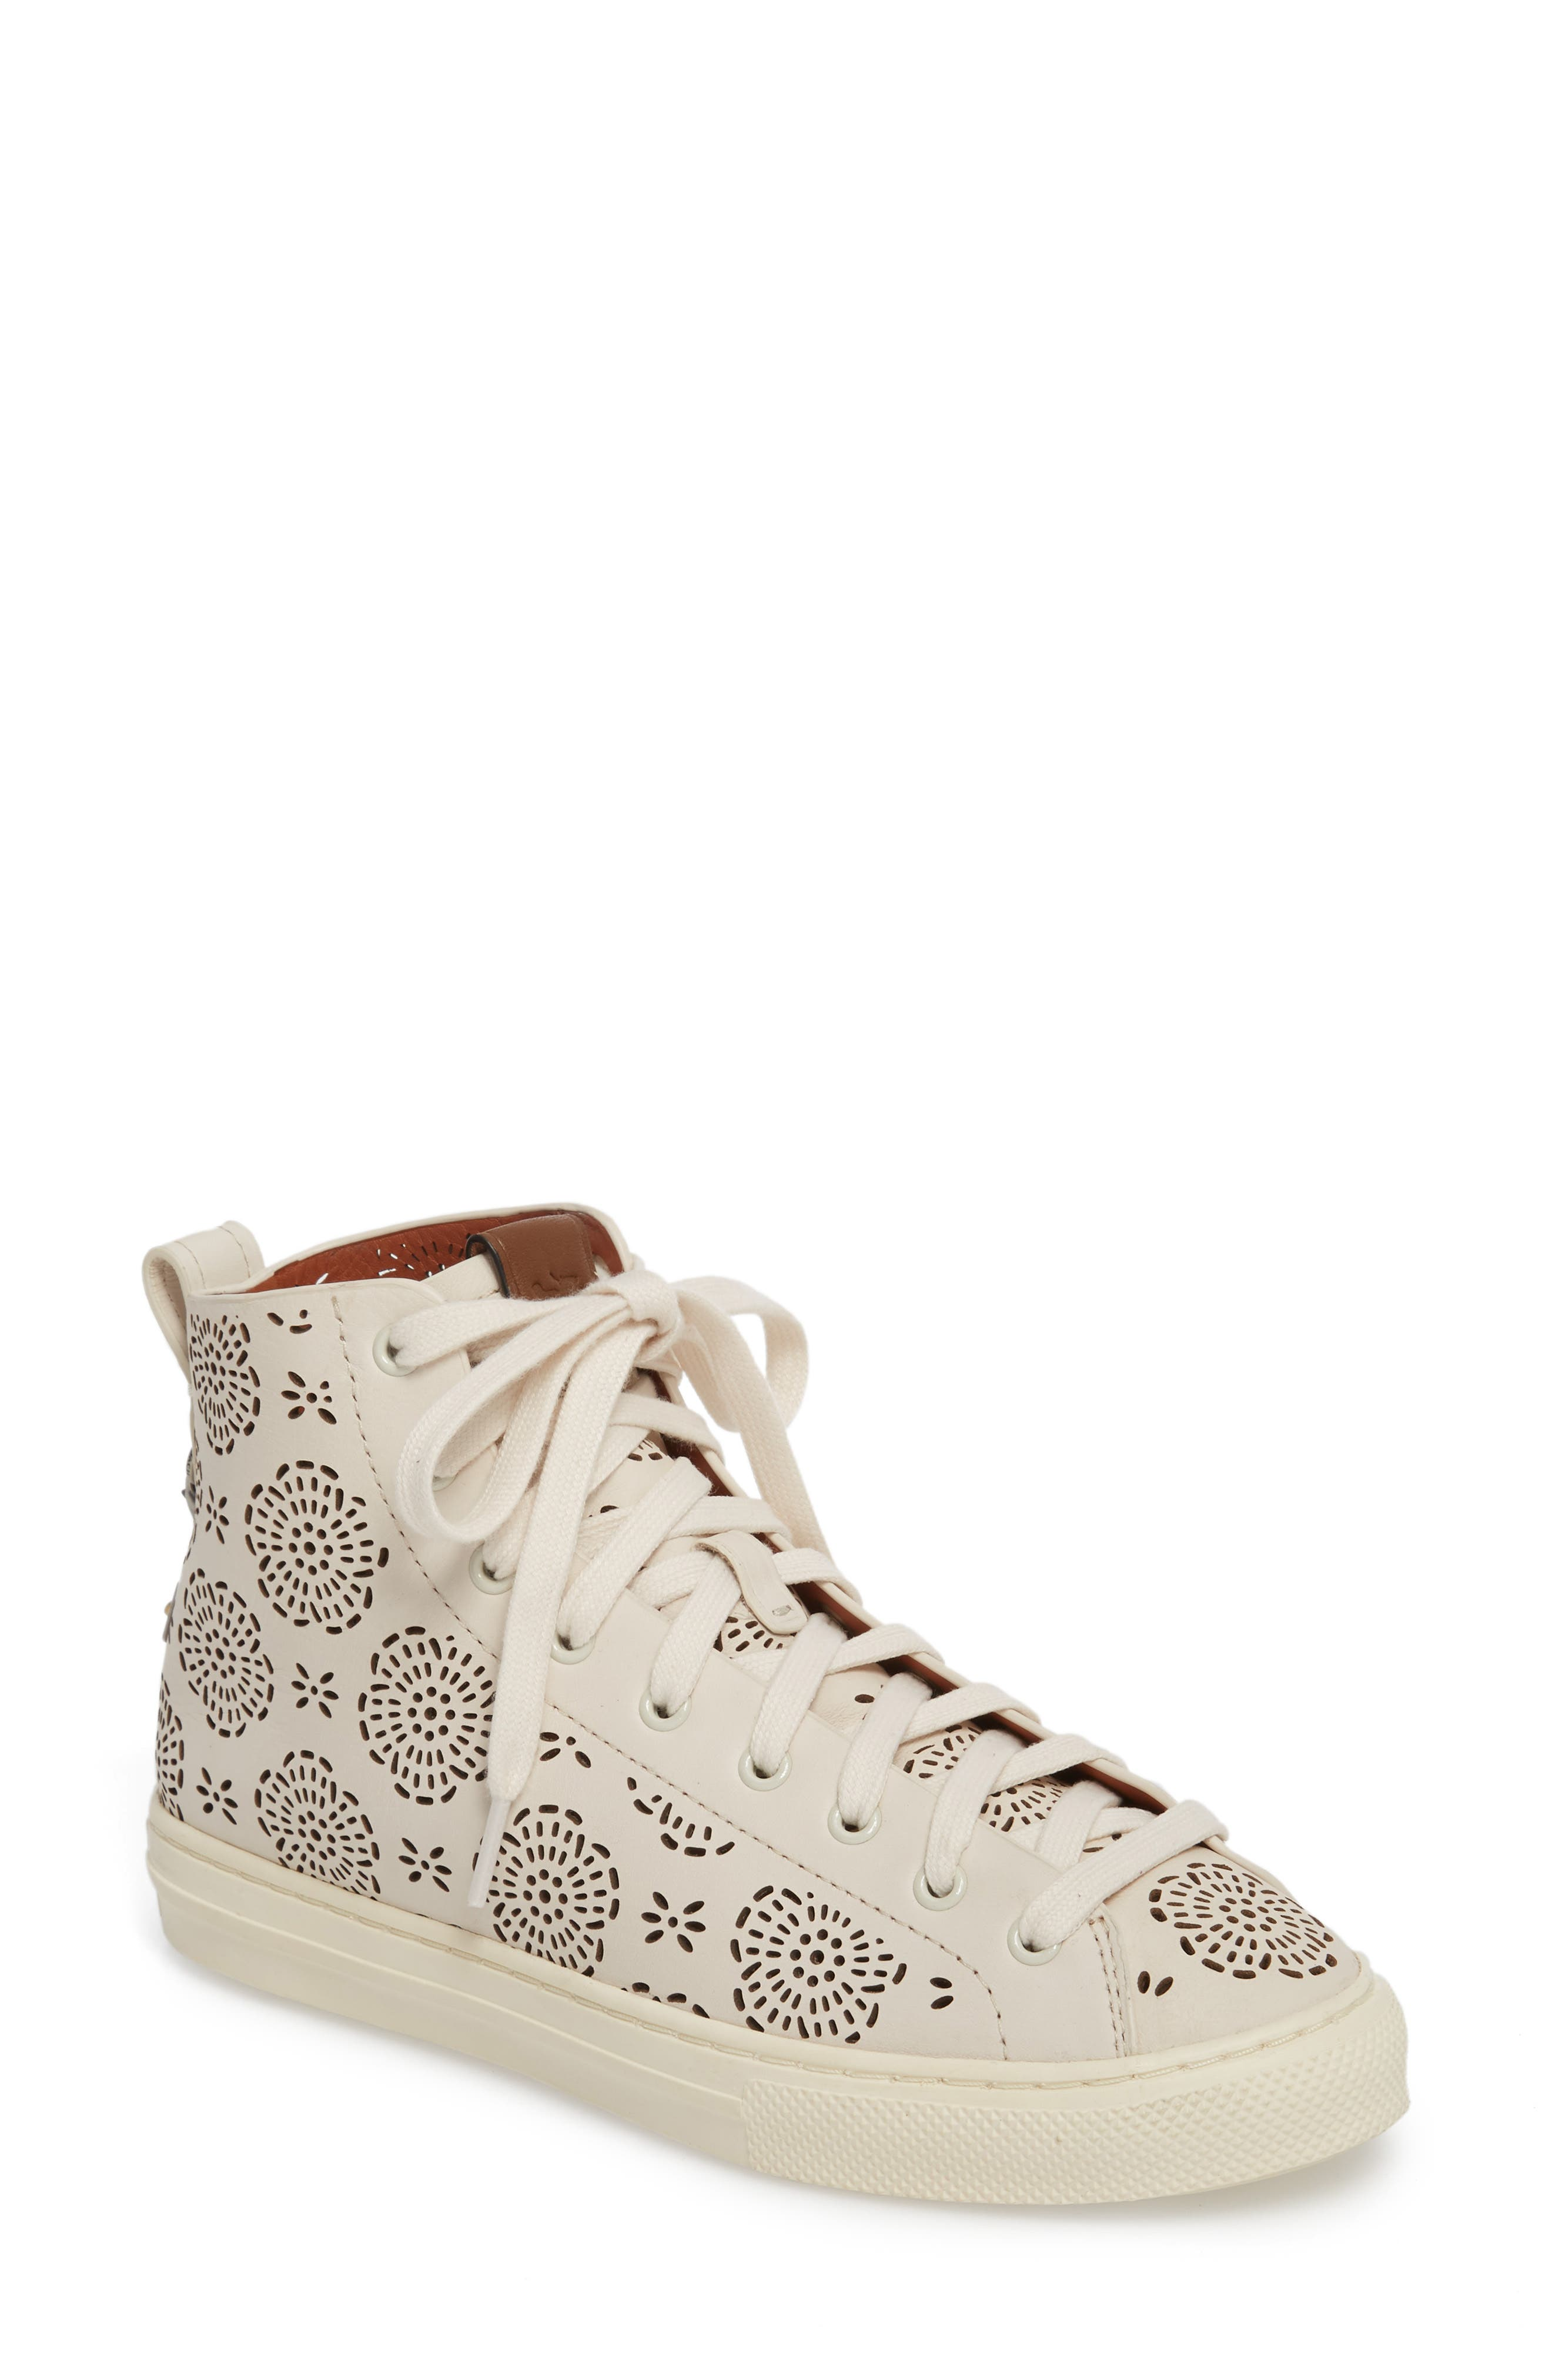 Tea Rose Cutout High Top Sneaker,                         Main,                         color, 115